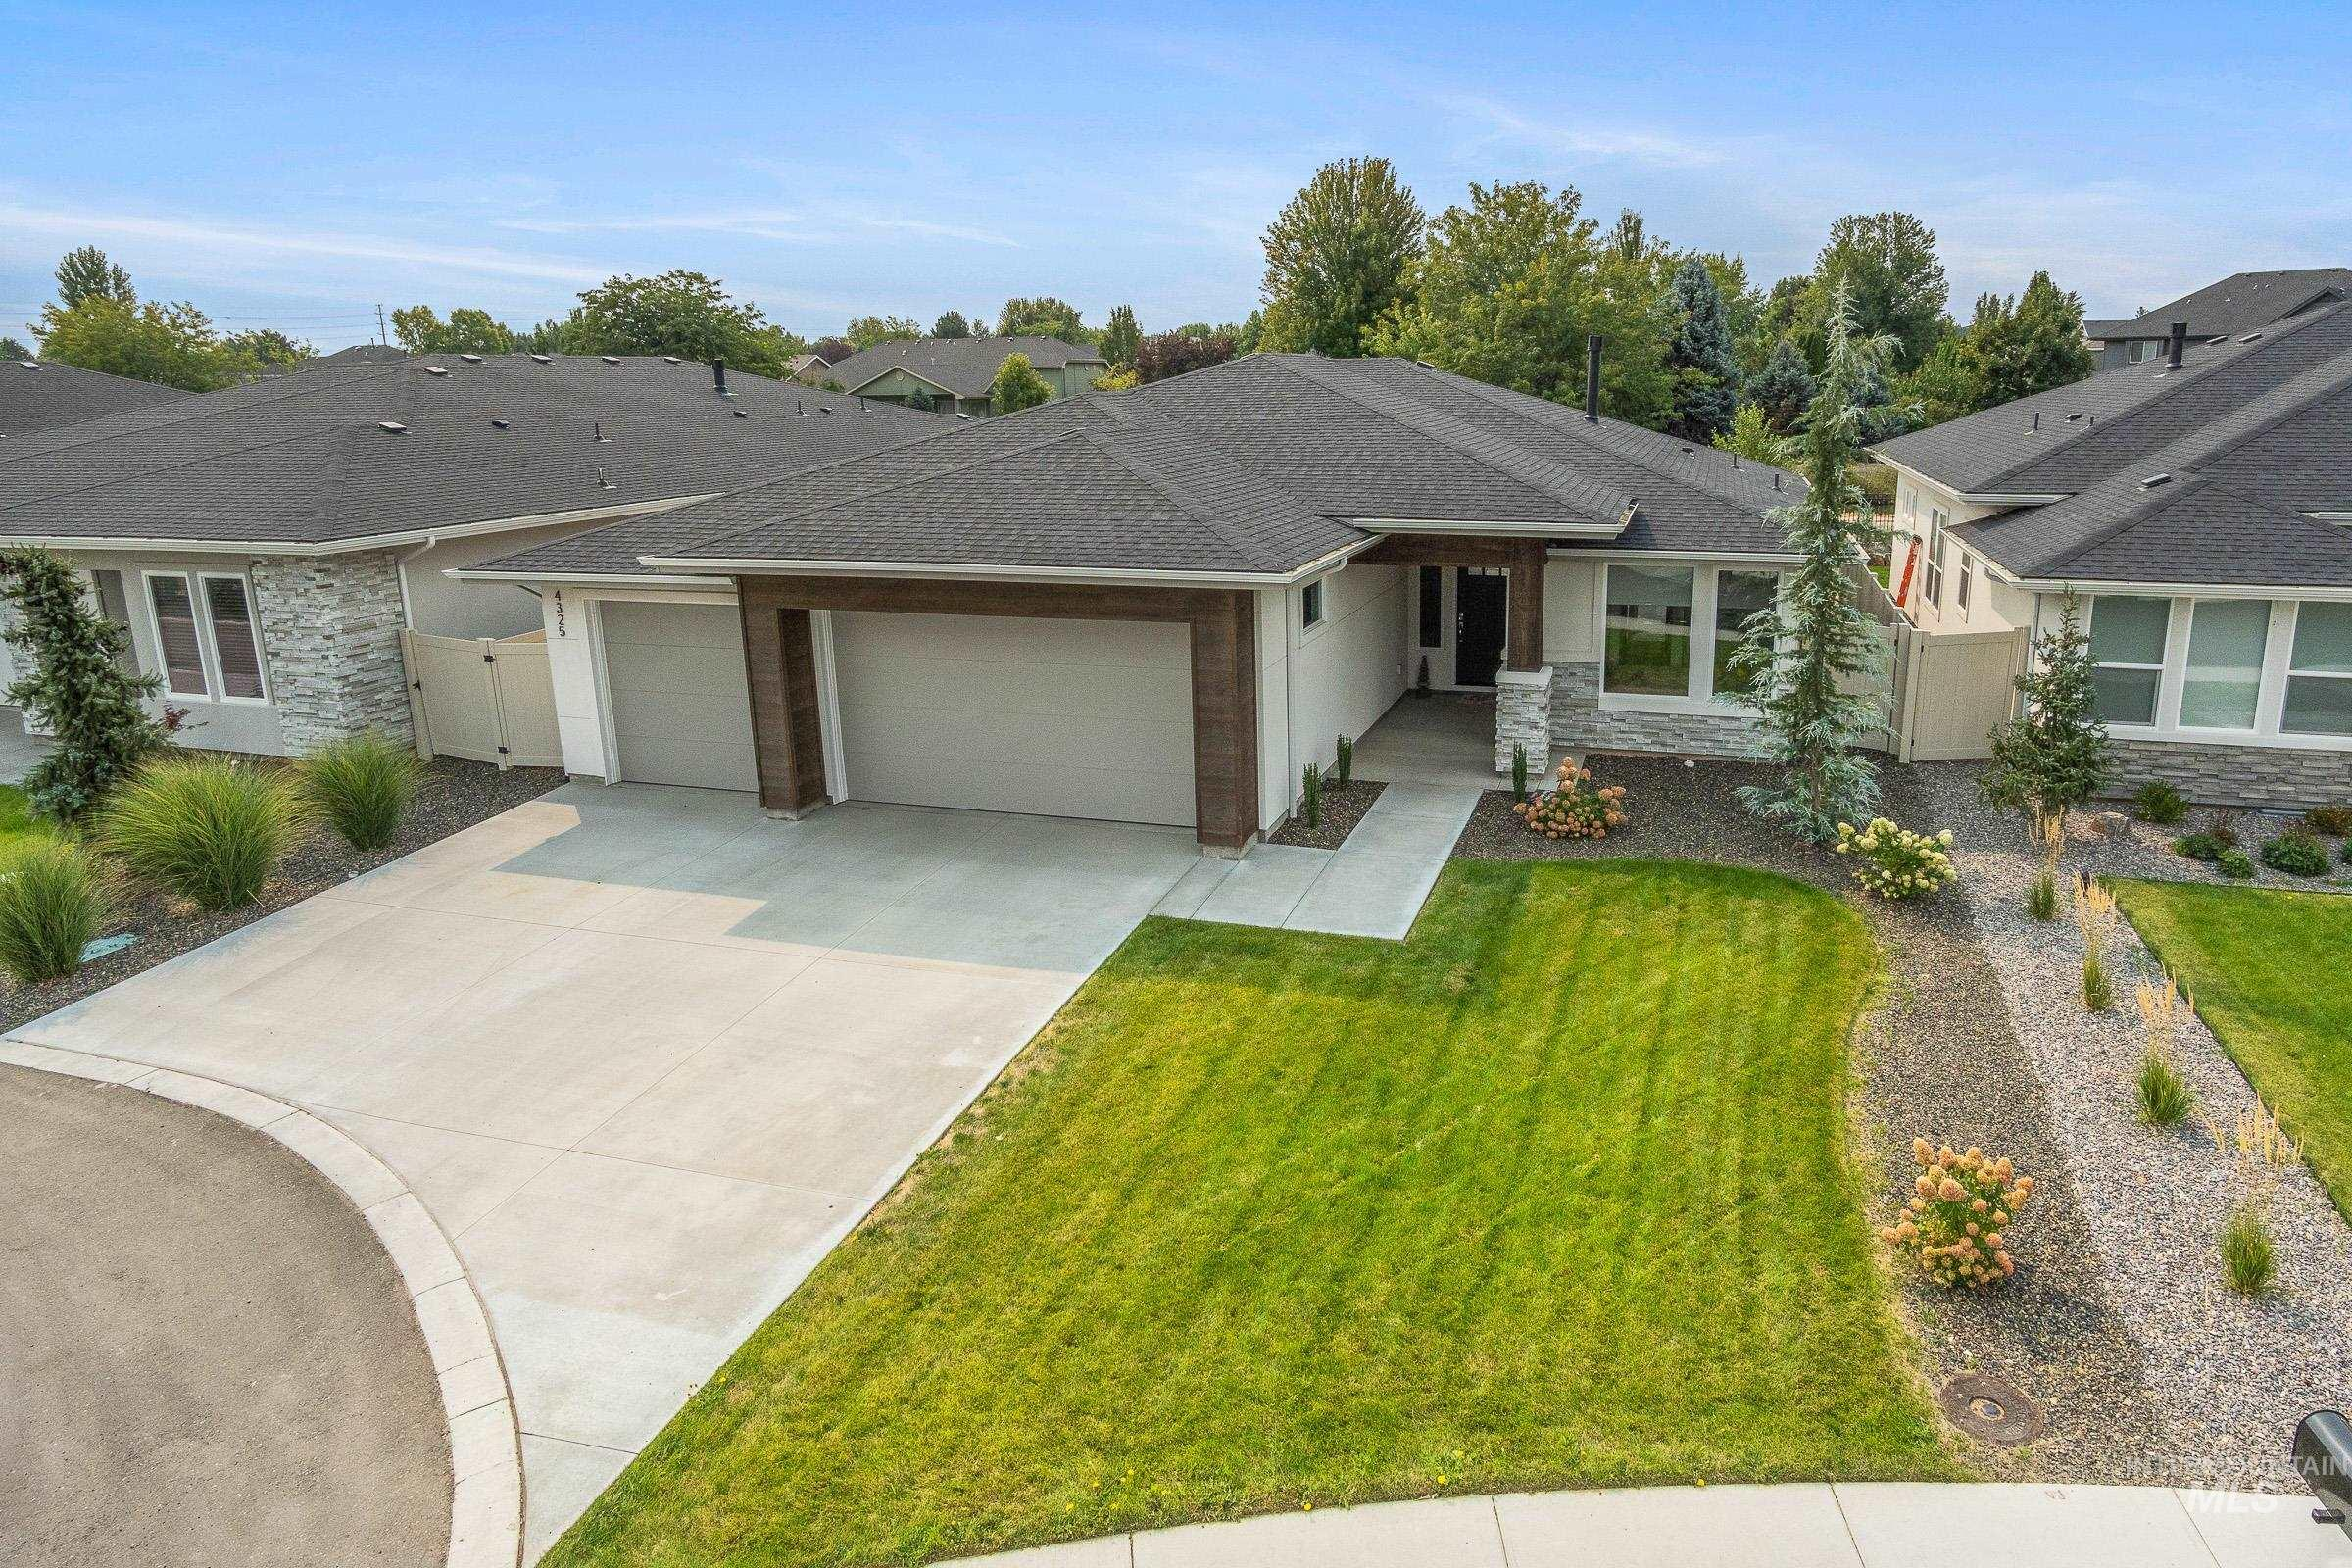 Photo of 4325 Copper Point Dr Meridian ID 83642